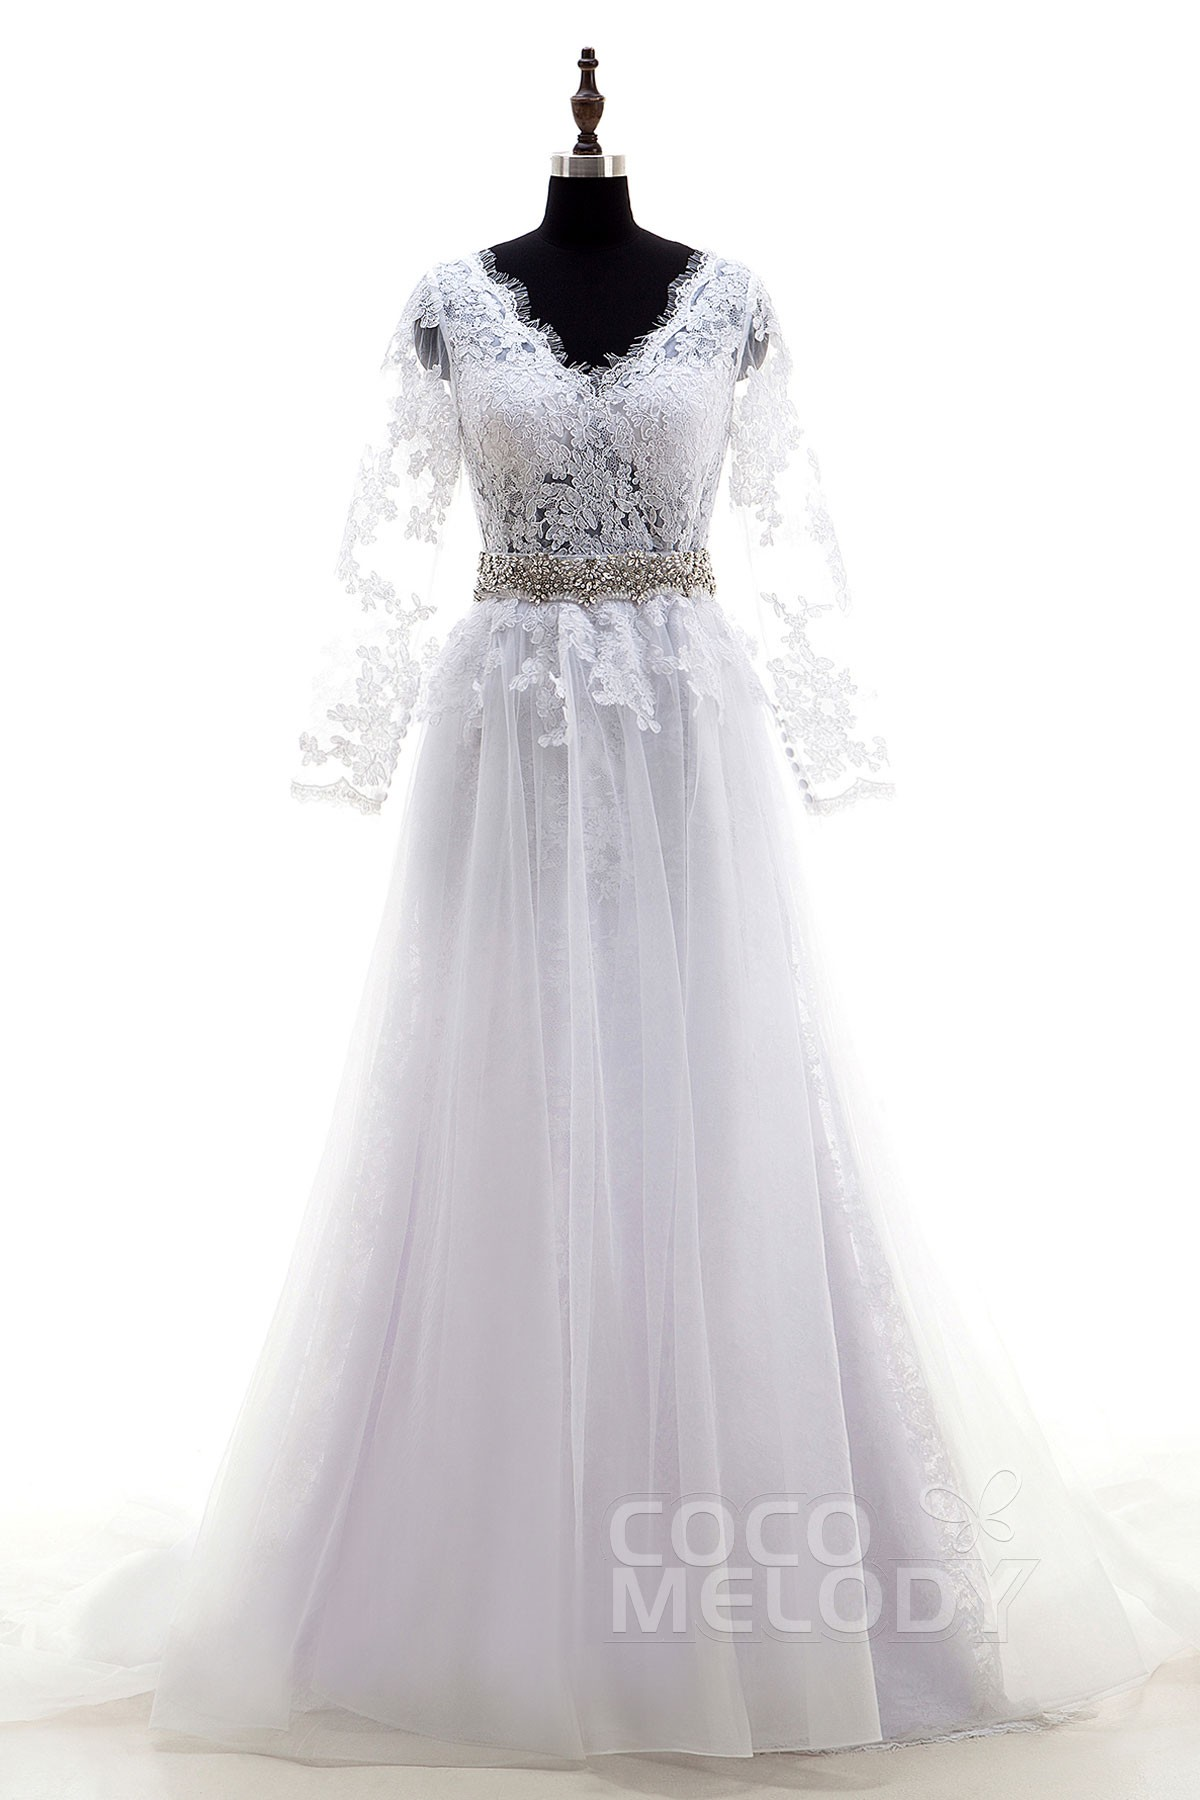 Simple V-Neck Natural Sweep-Brush Train Lace White Long Sleeve Zipper With Buttons Wedding Dress Sashes Removable Skirt LD4025